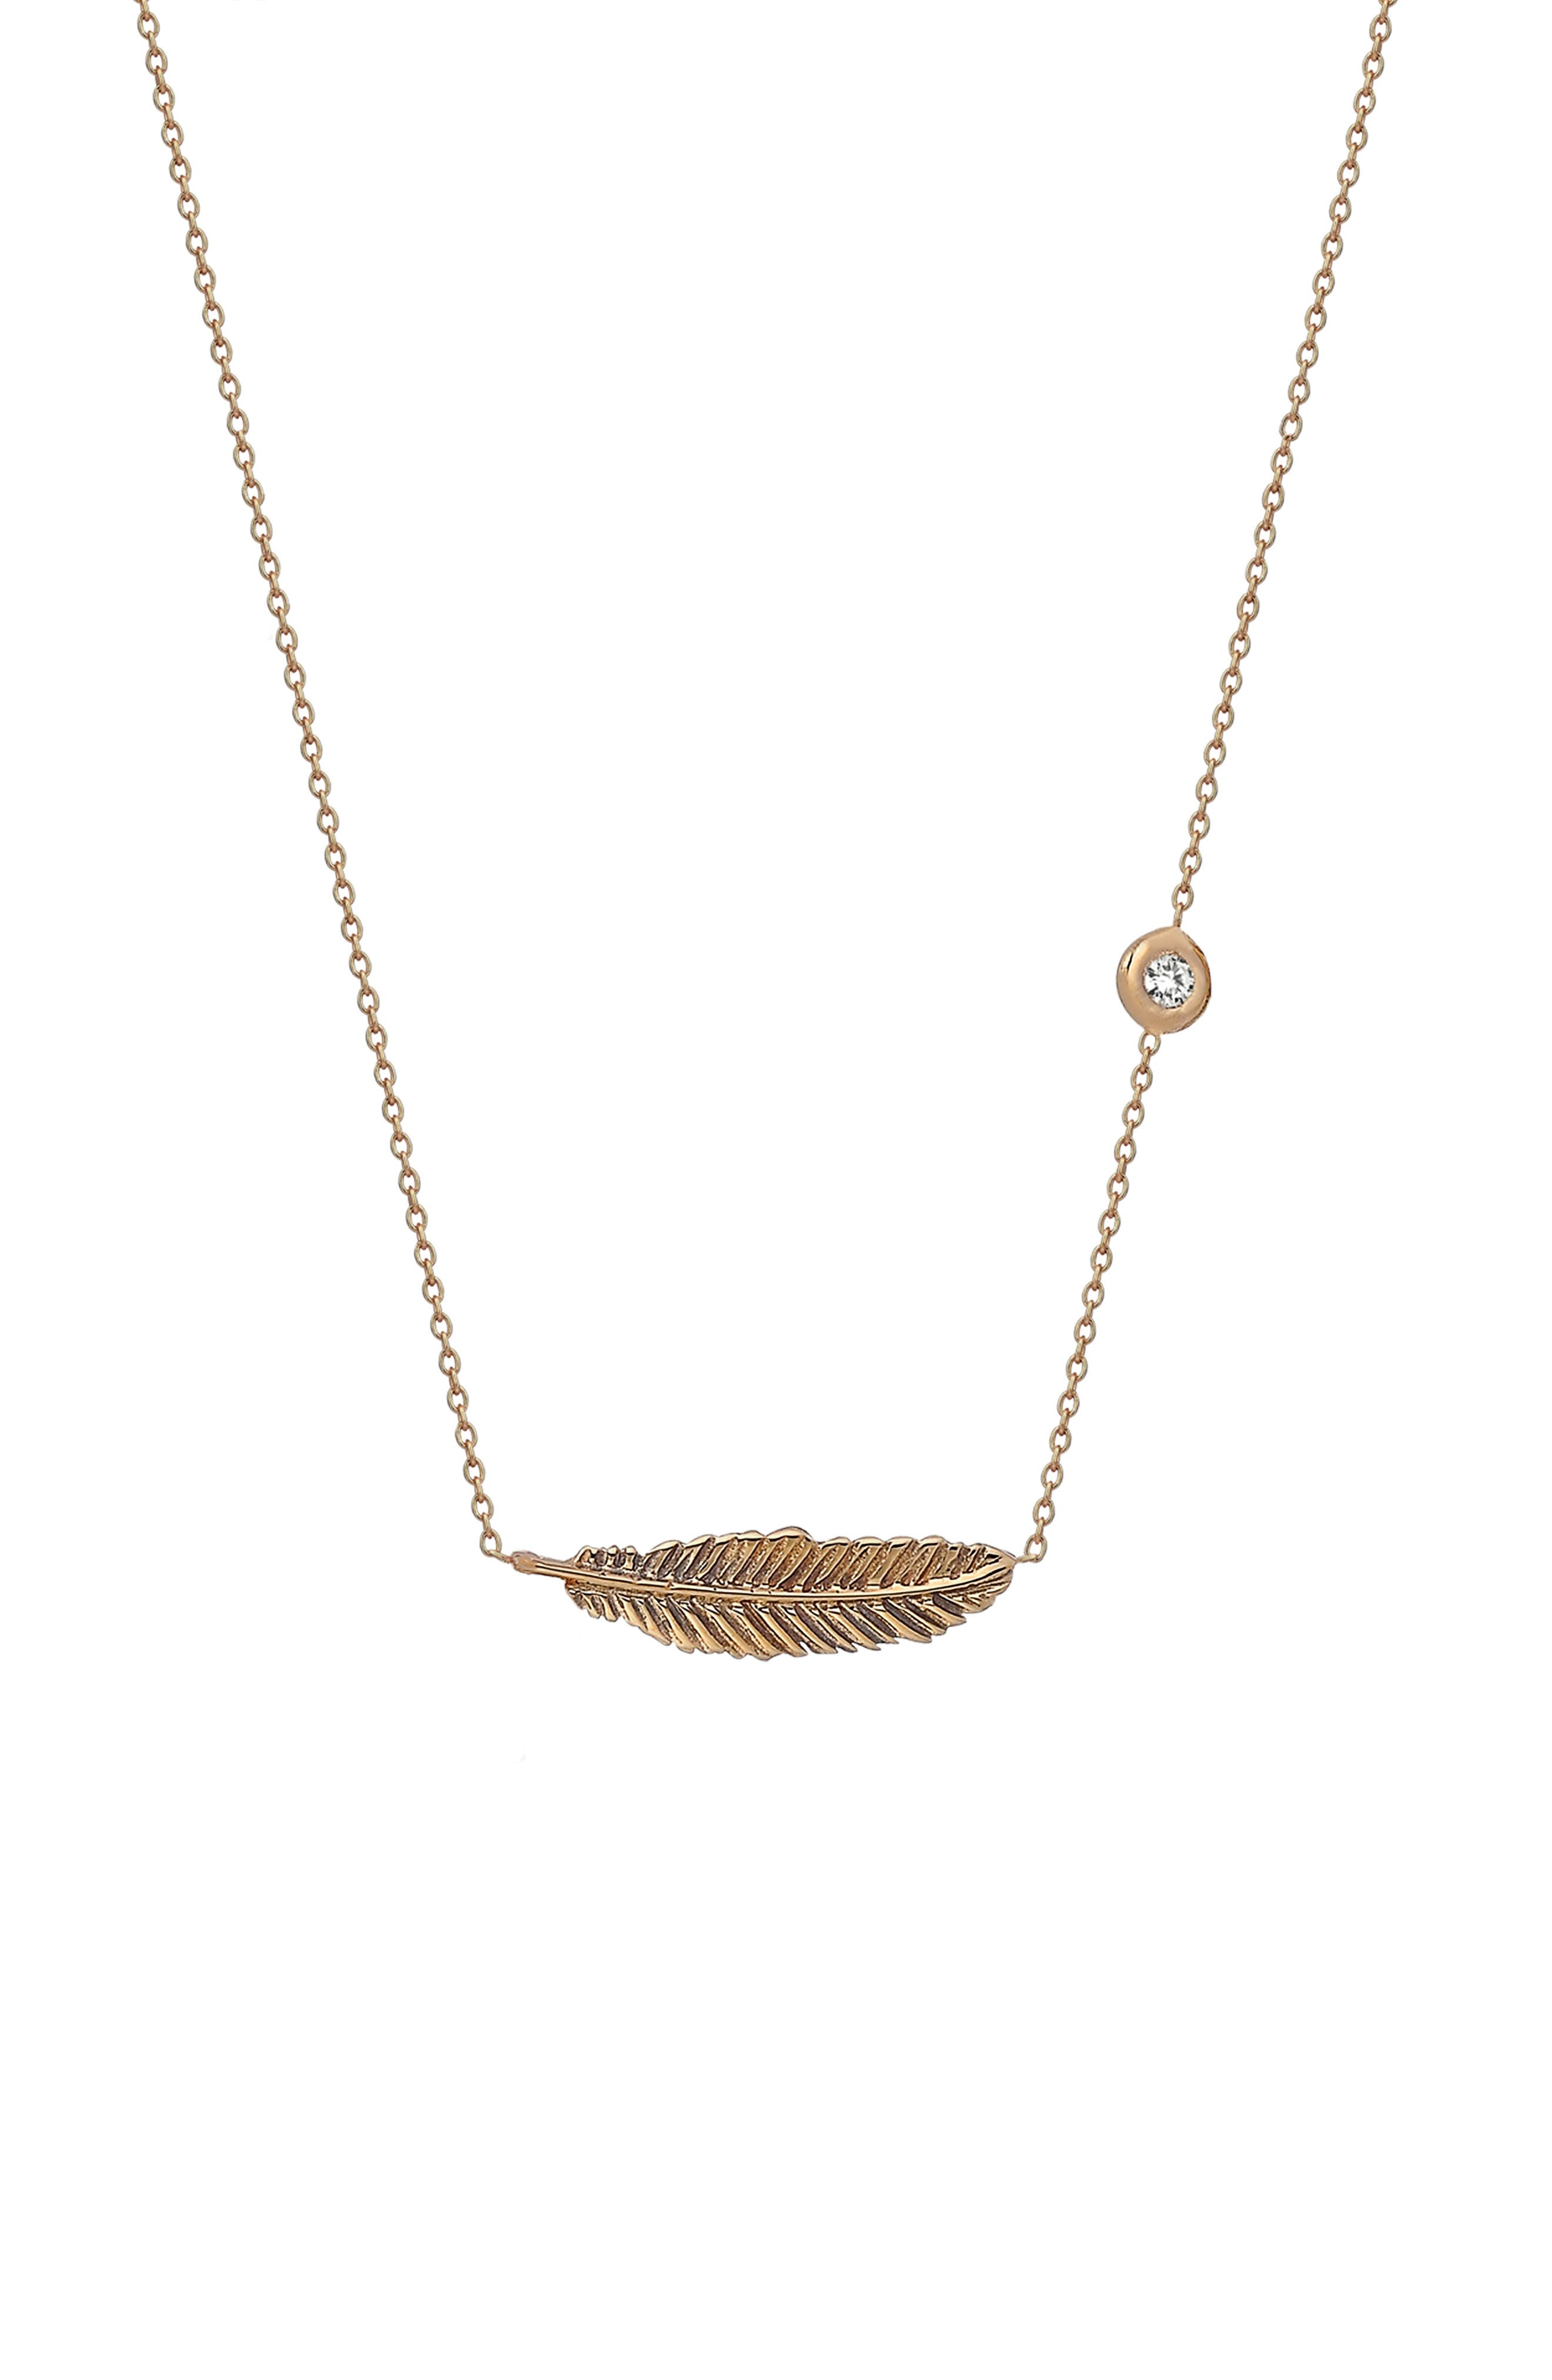 KISMET BY MILKA Diamond & Feather Pendant Necklace, Main, color, ROSE GOLD/ DIAMOND